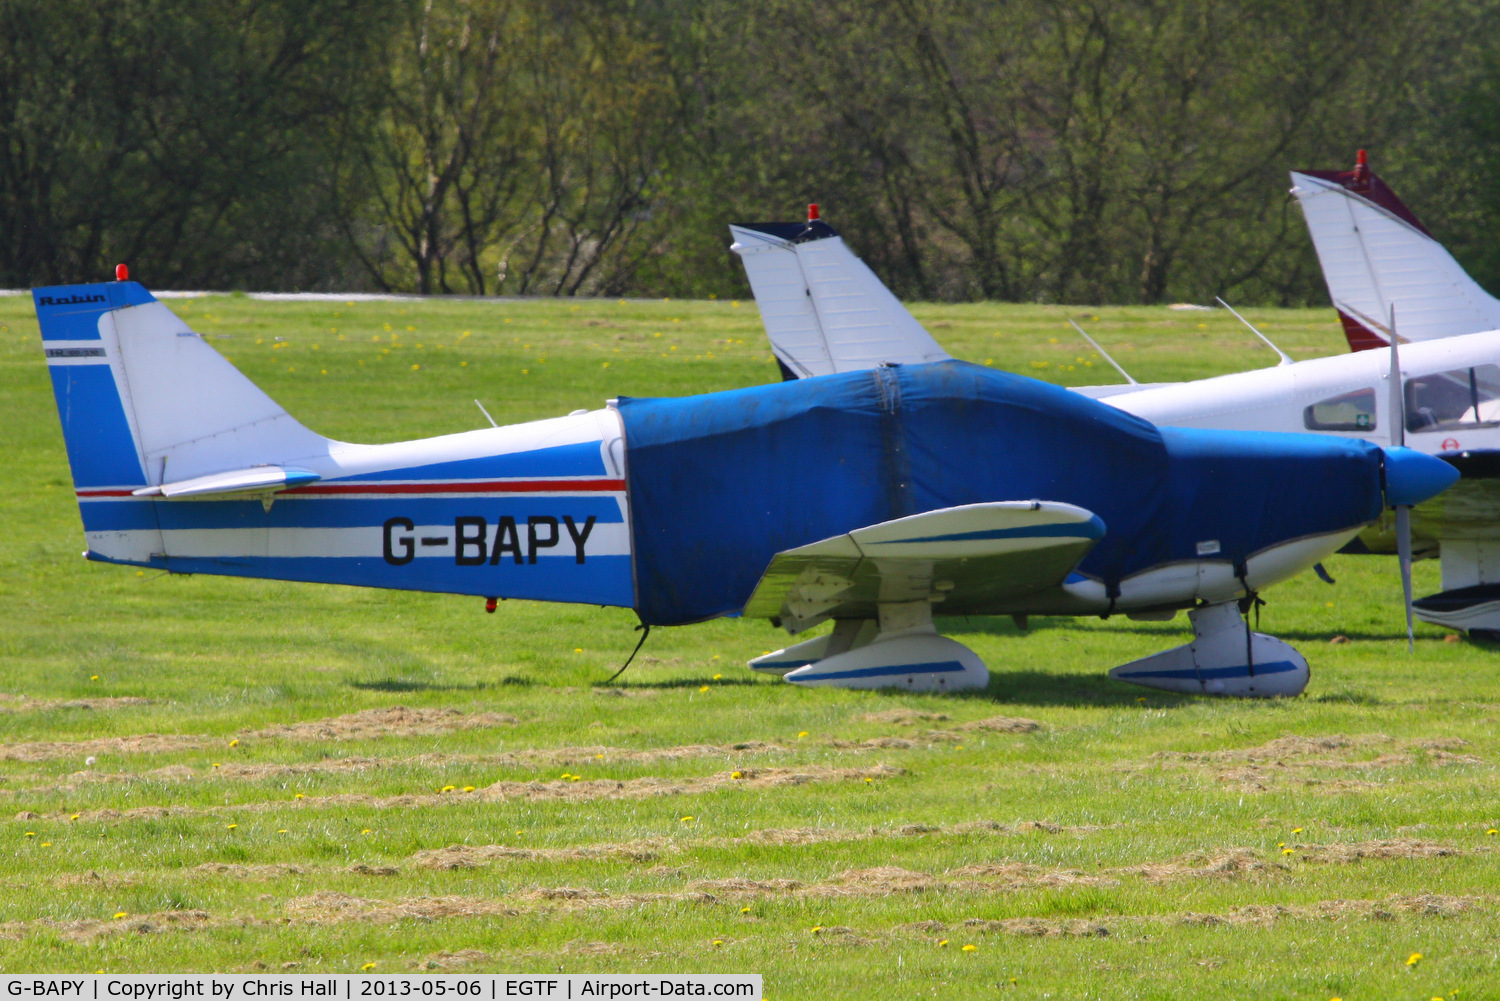 G-BAPY, 1972 Robin HR-100-210 Safari C/N 153, privately owned